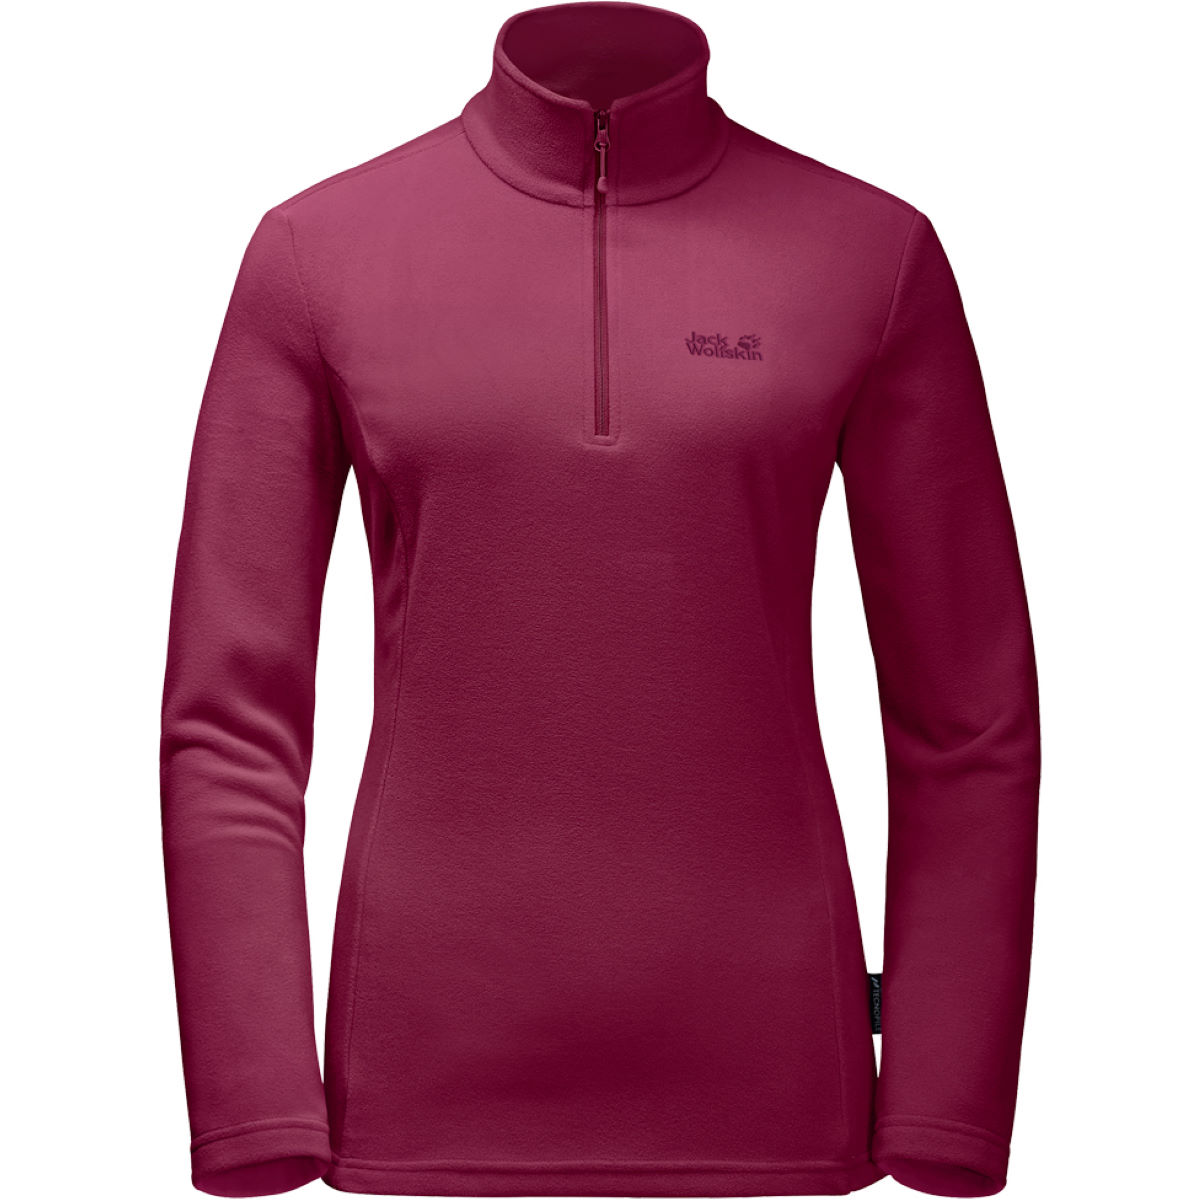 Maillot Femme Jack Wolfskin Gecko - Small Dark Ruby Polaires légères